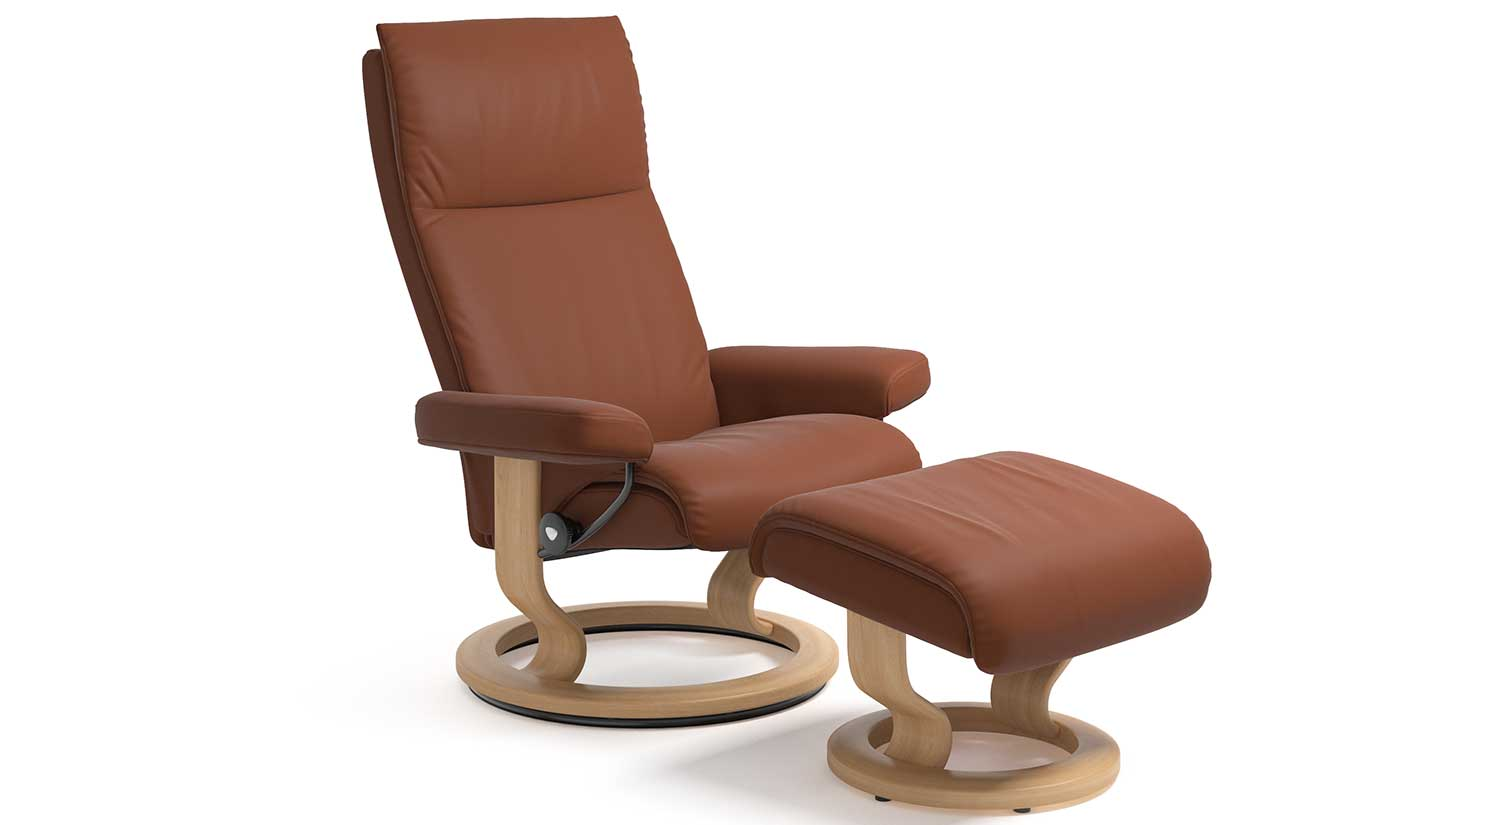 Stressless Outlet Circle Furniture Aura Stressless Chairs Leather